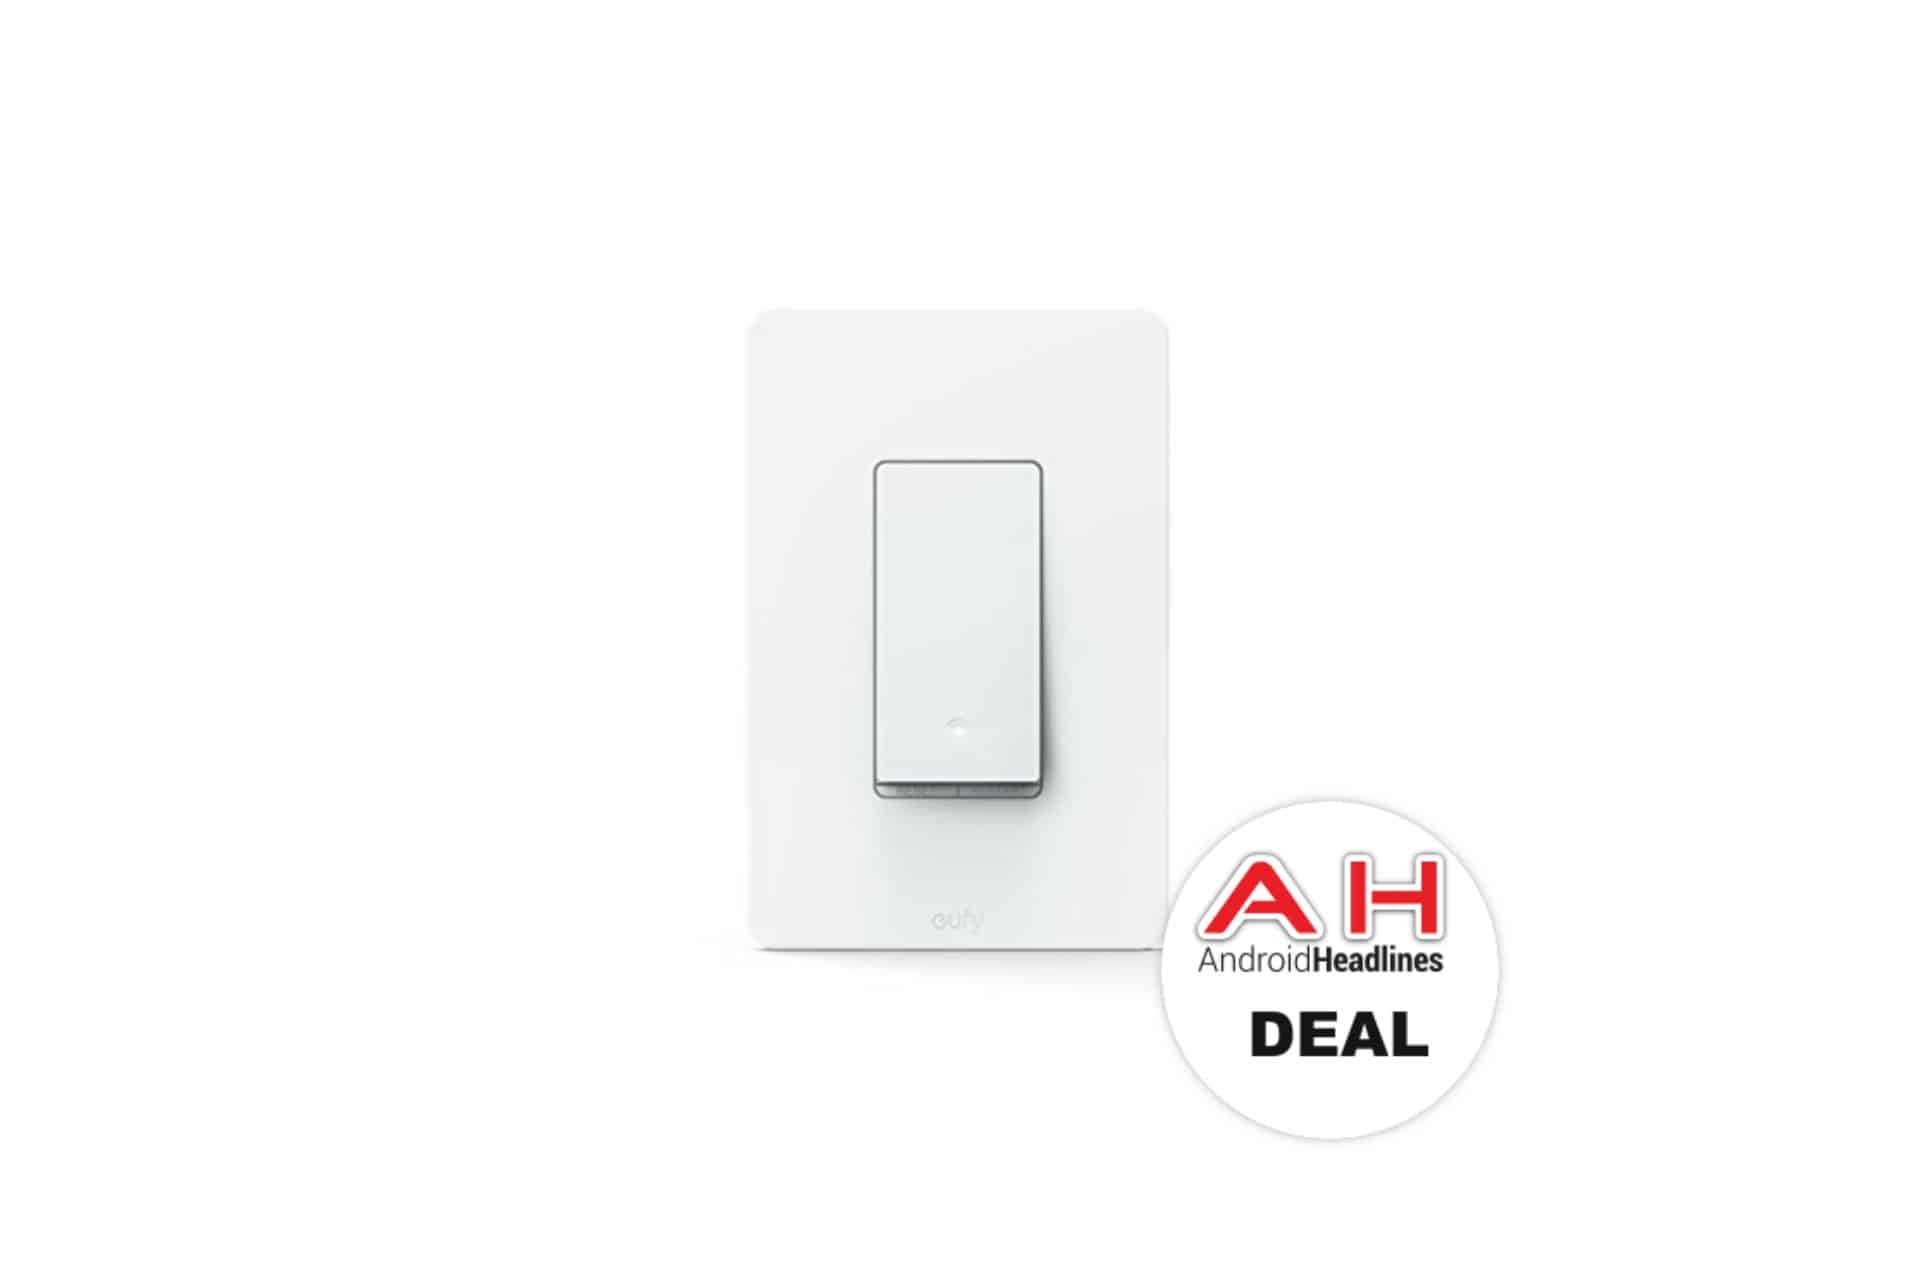 Deal: eufy Smart Switch (Works With Amazon Alexa) for $25